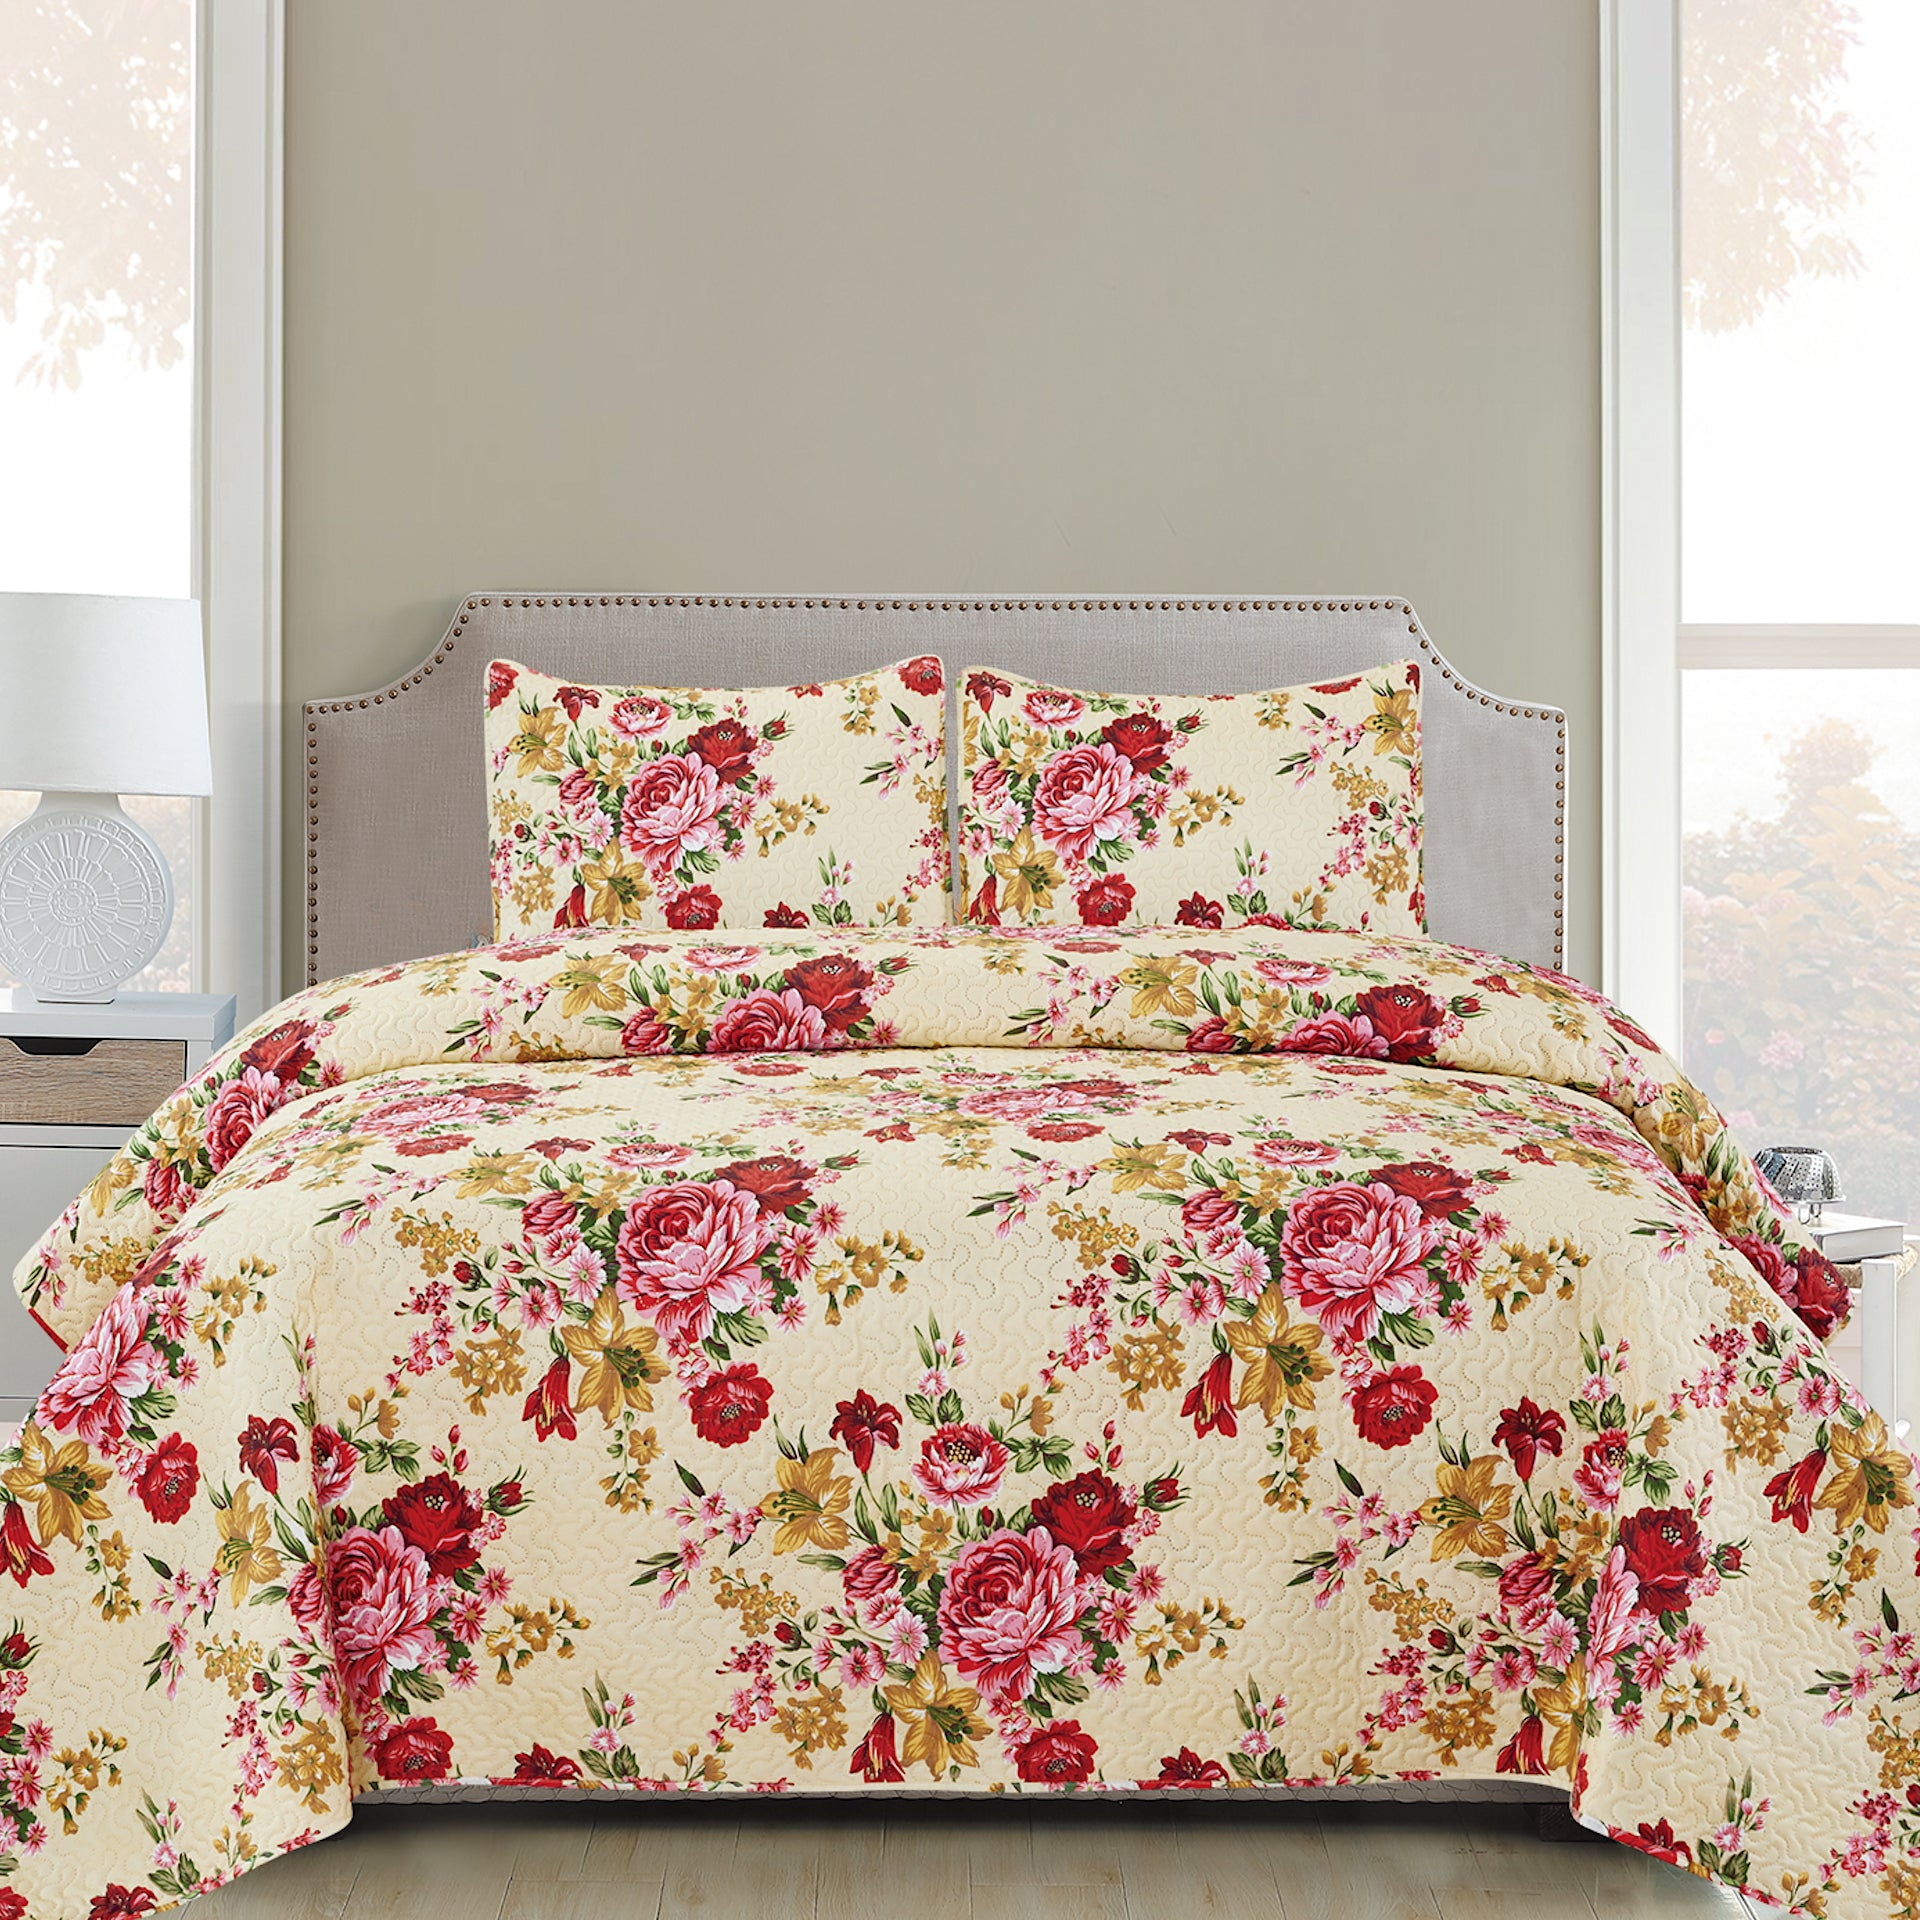 Ruth - 3 Piece Quilt Set - Red - Glory Home Design